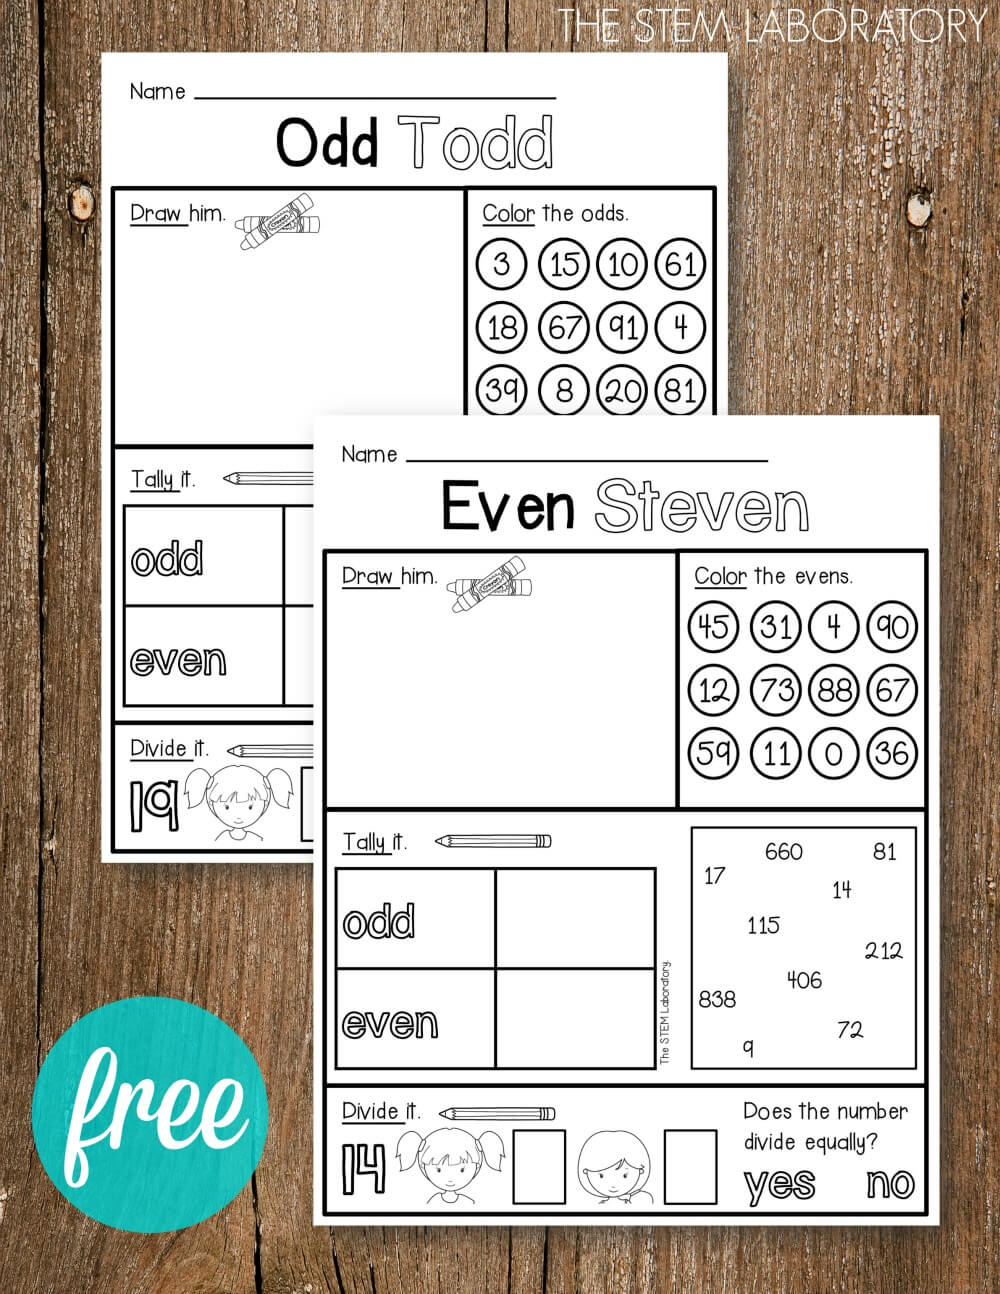 medium resolution of Odd and Even Activity Sheets - The Stem Laboratory